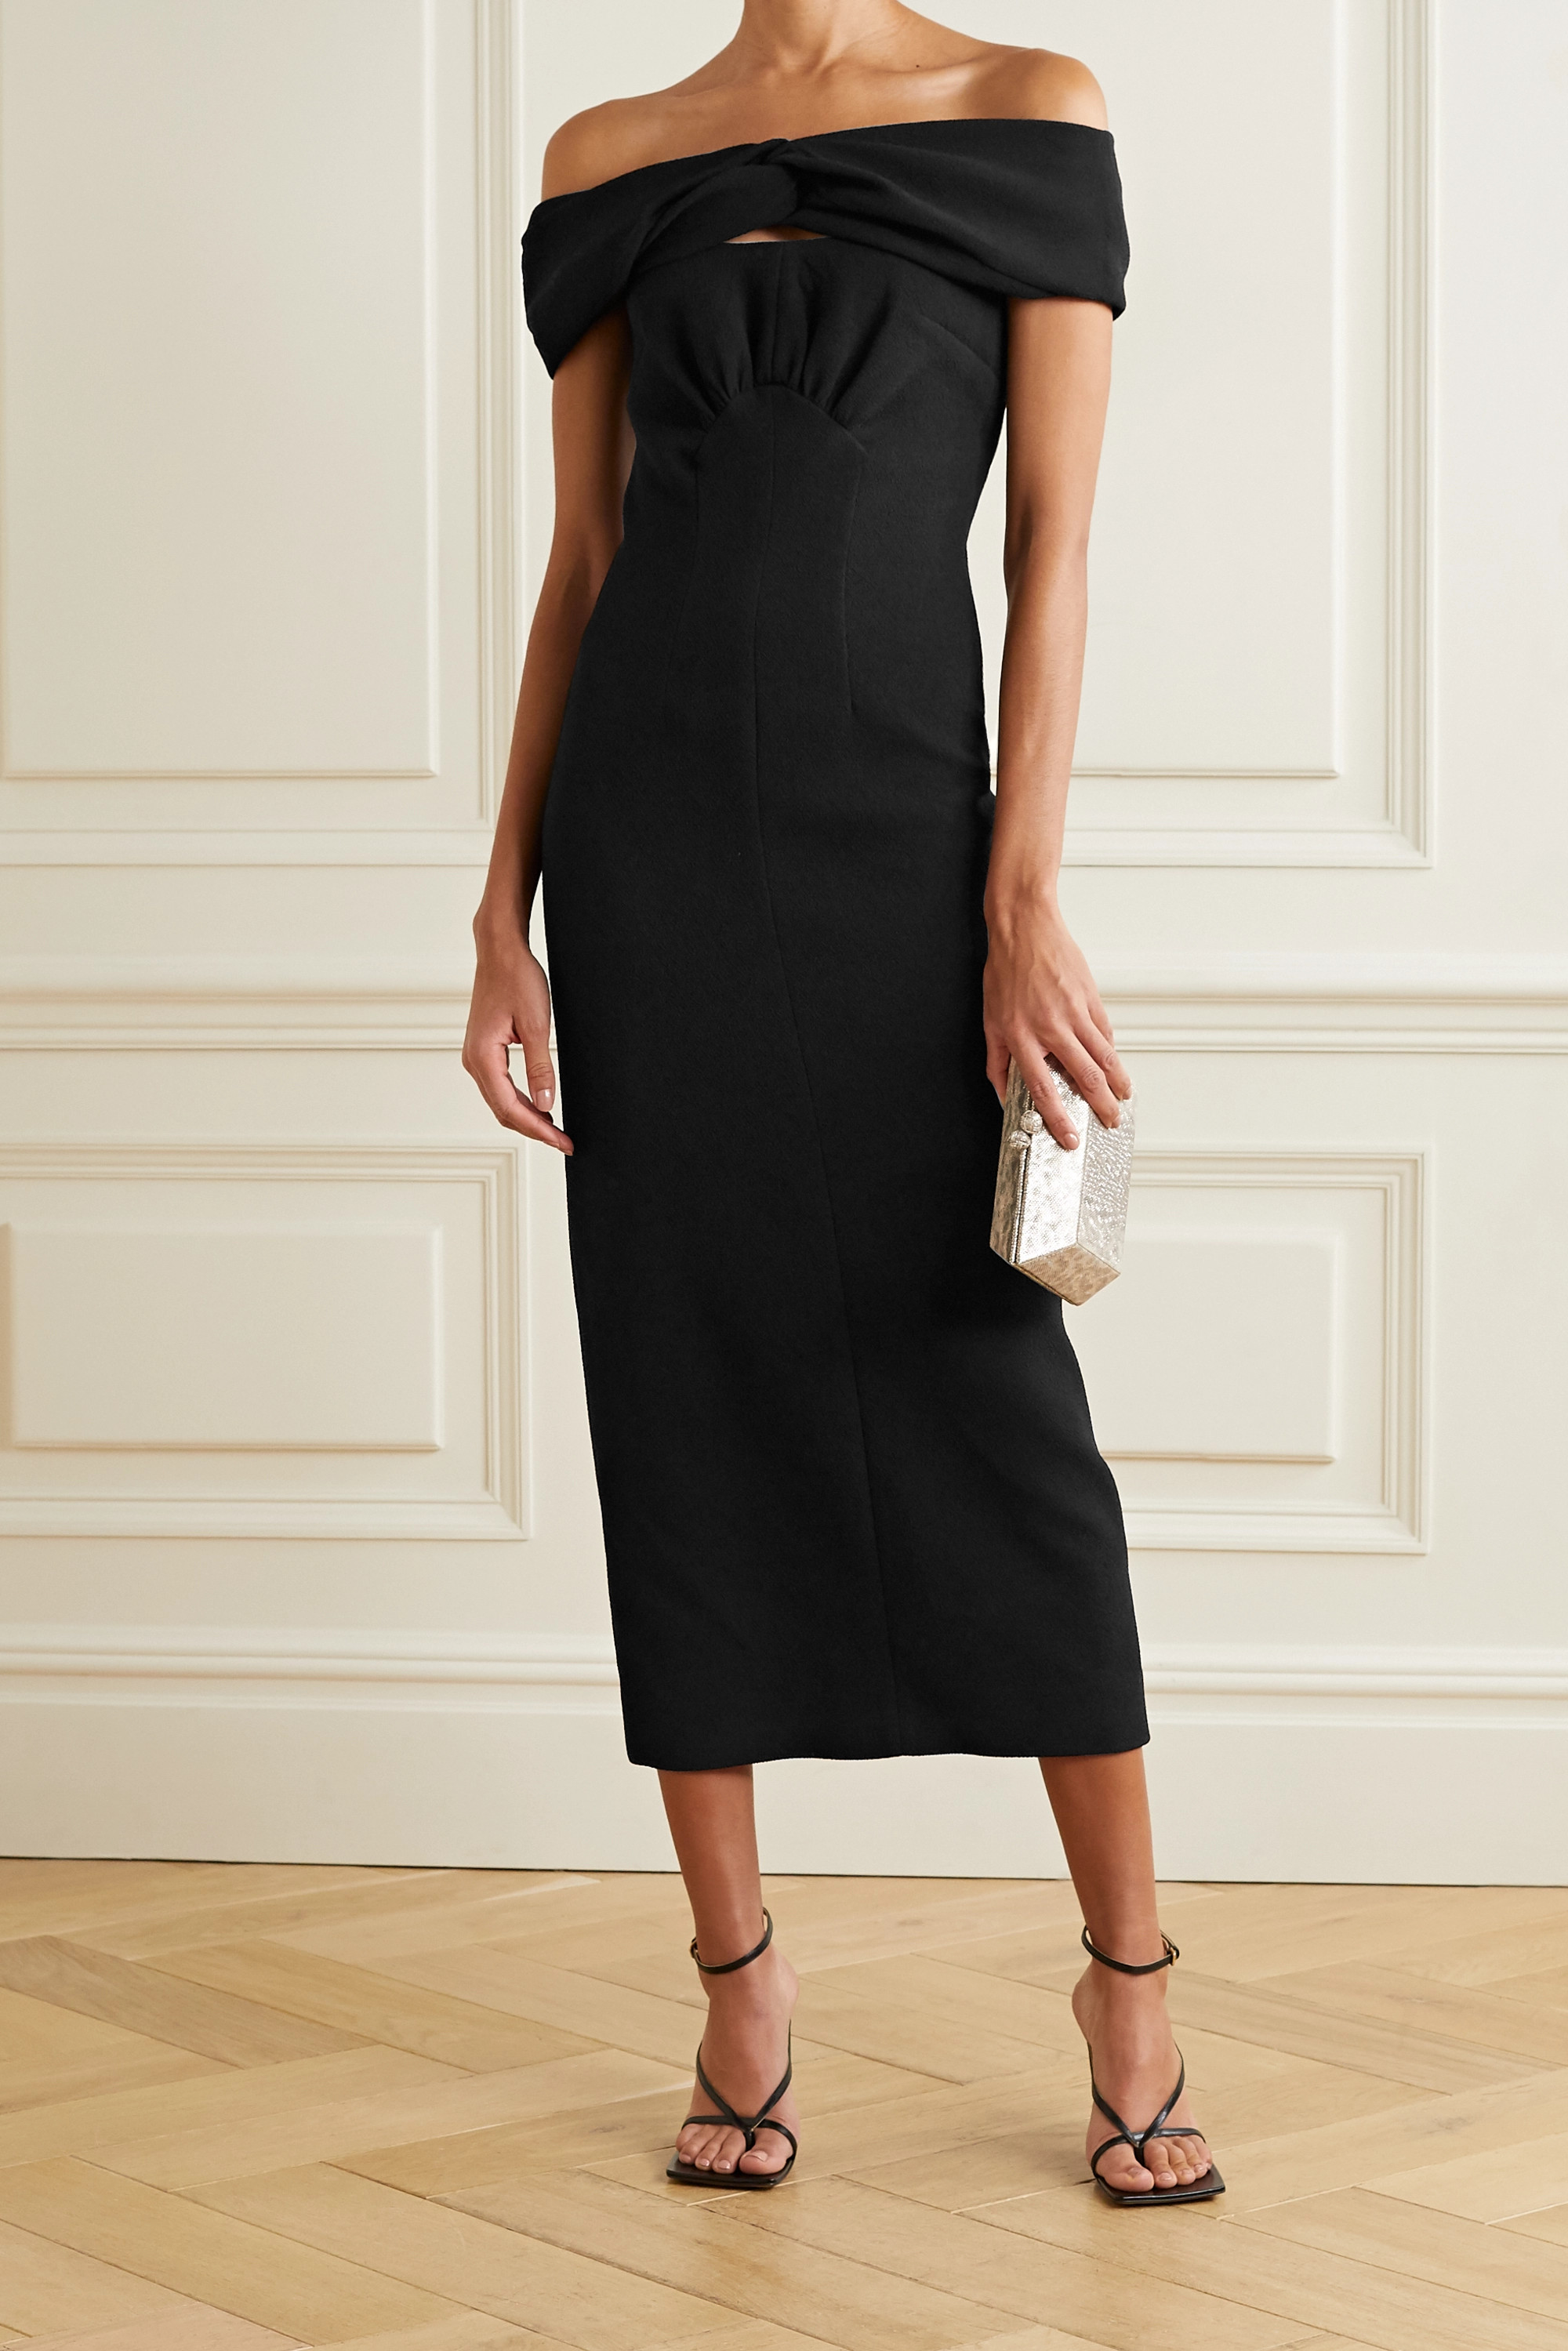 Emilia Wickstead Padma off-the-shoulder cutout crepe midi dress